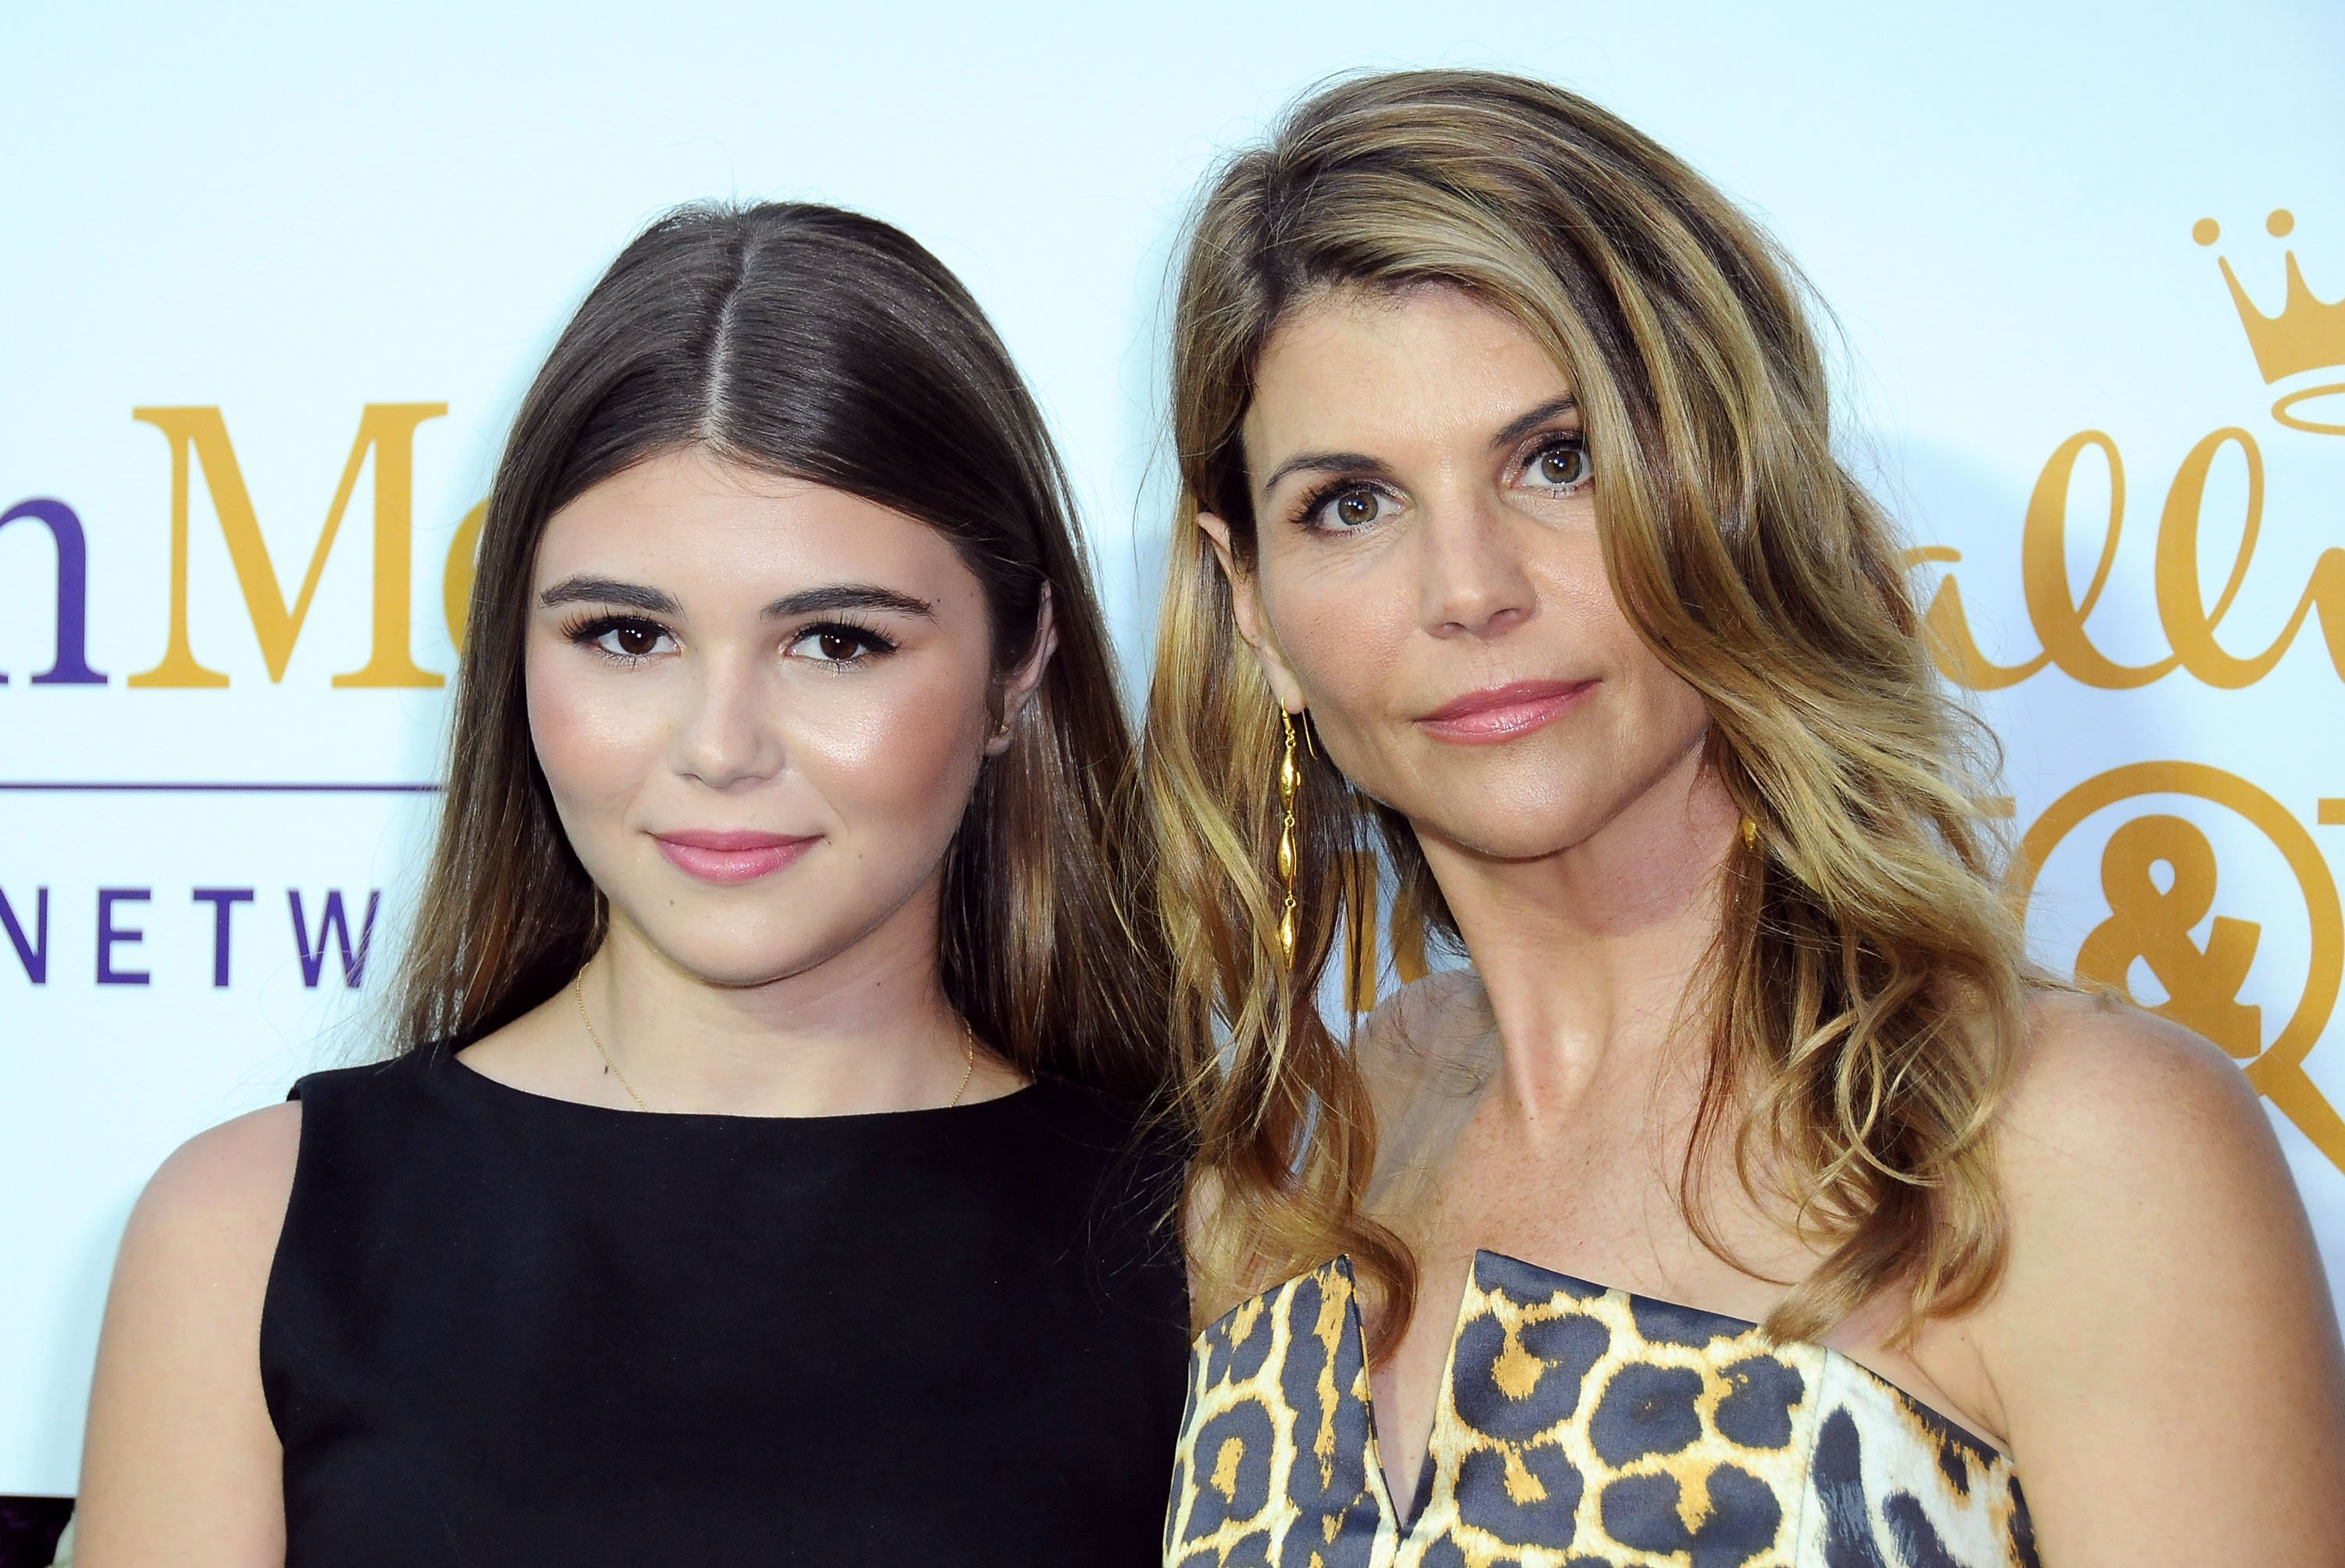 Lori Loughlin and daughter Olivia Jade at a Hallmark event | Photo: Getty Images